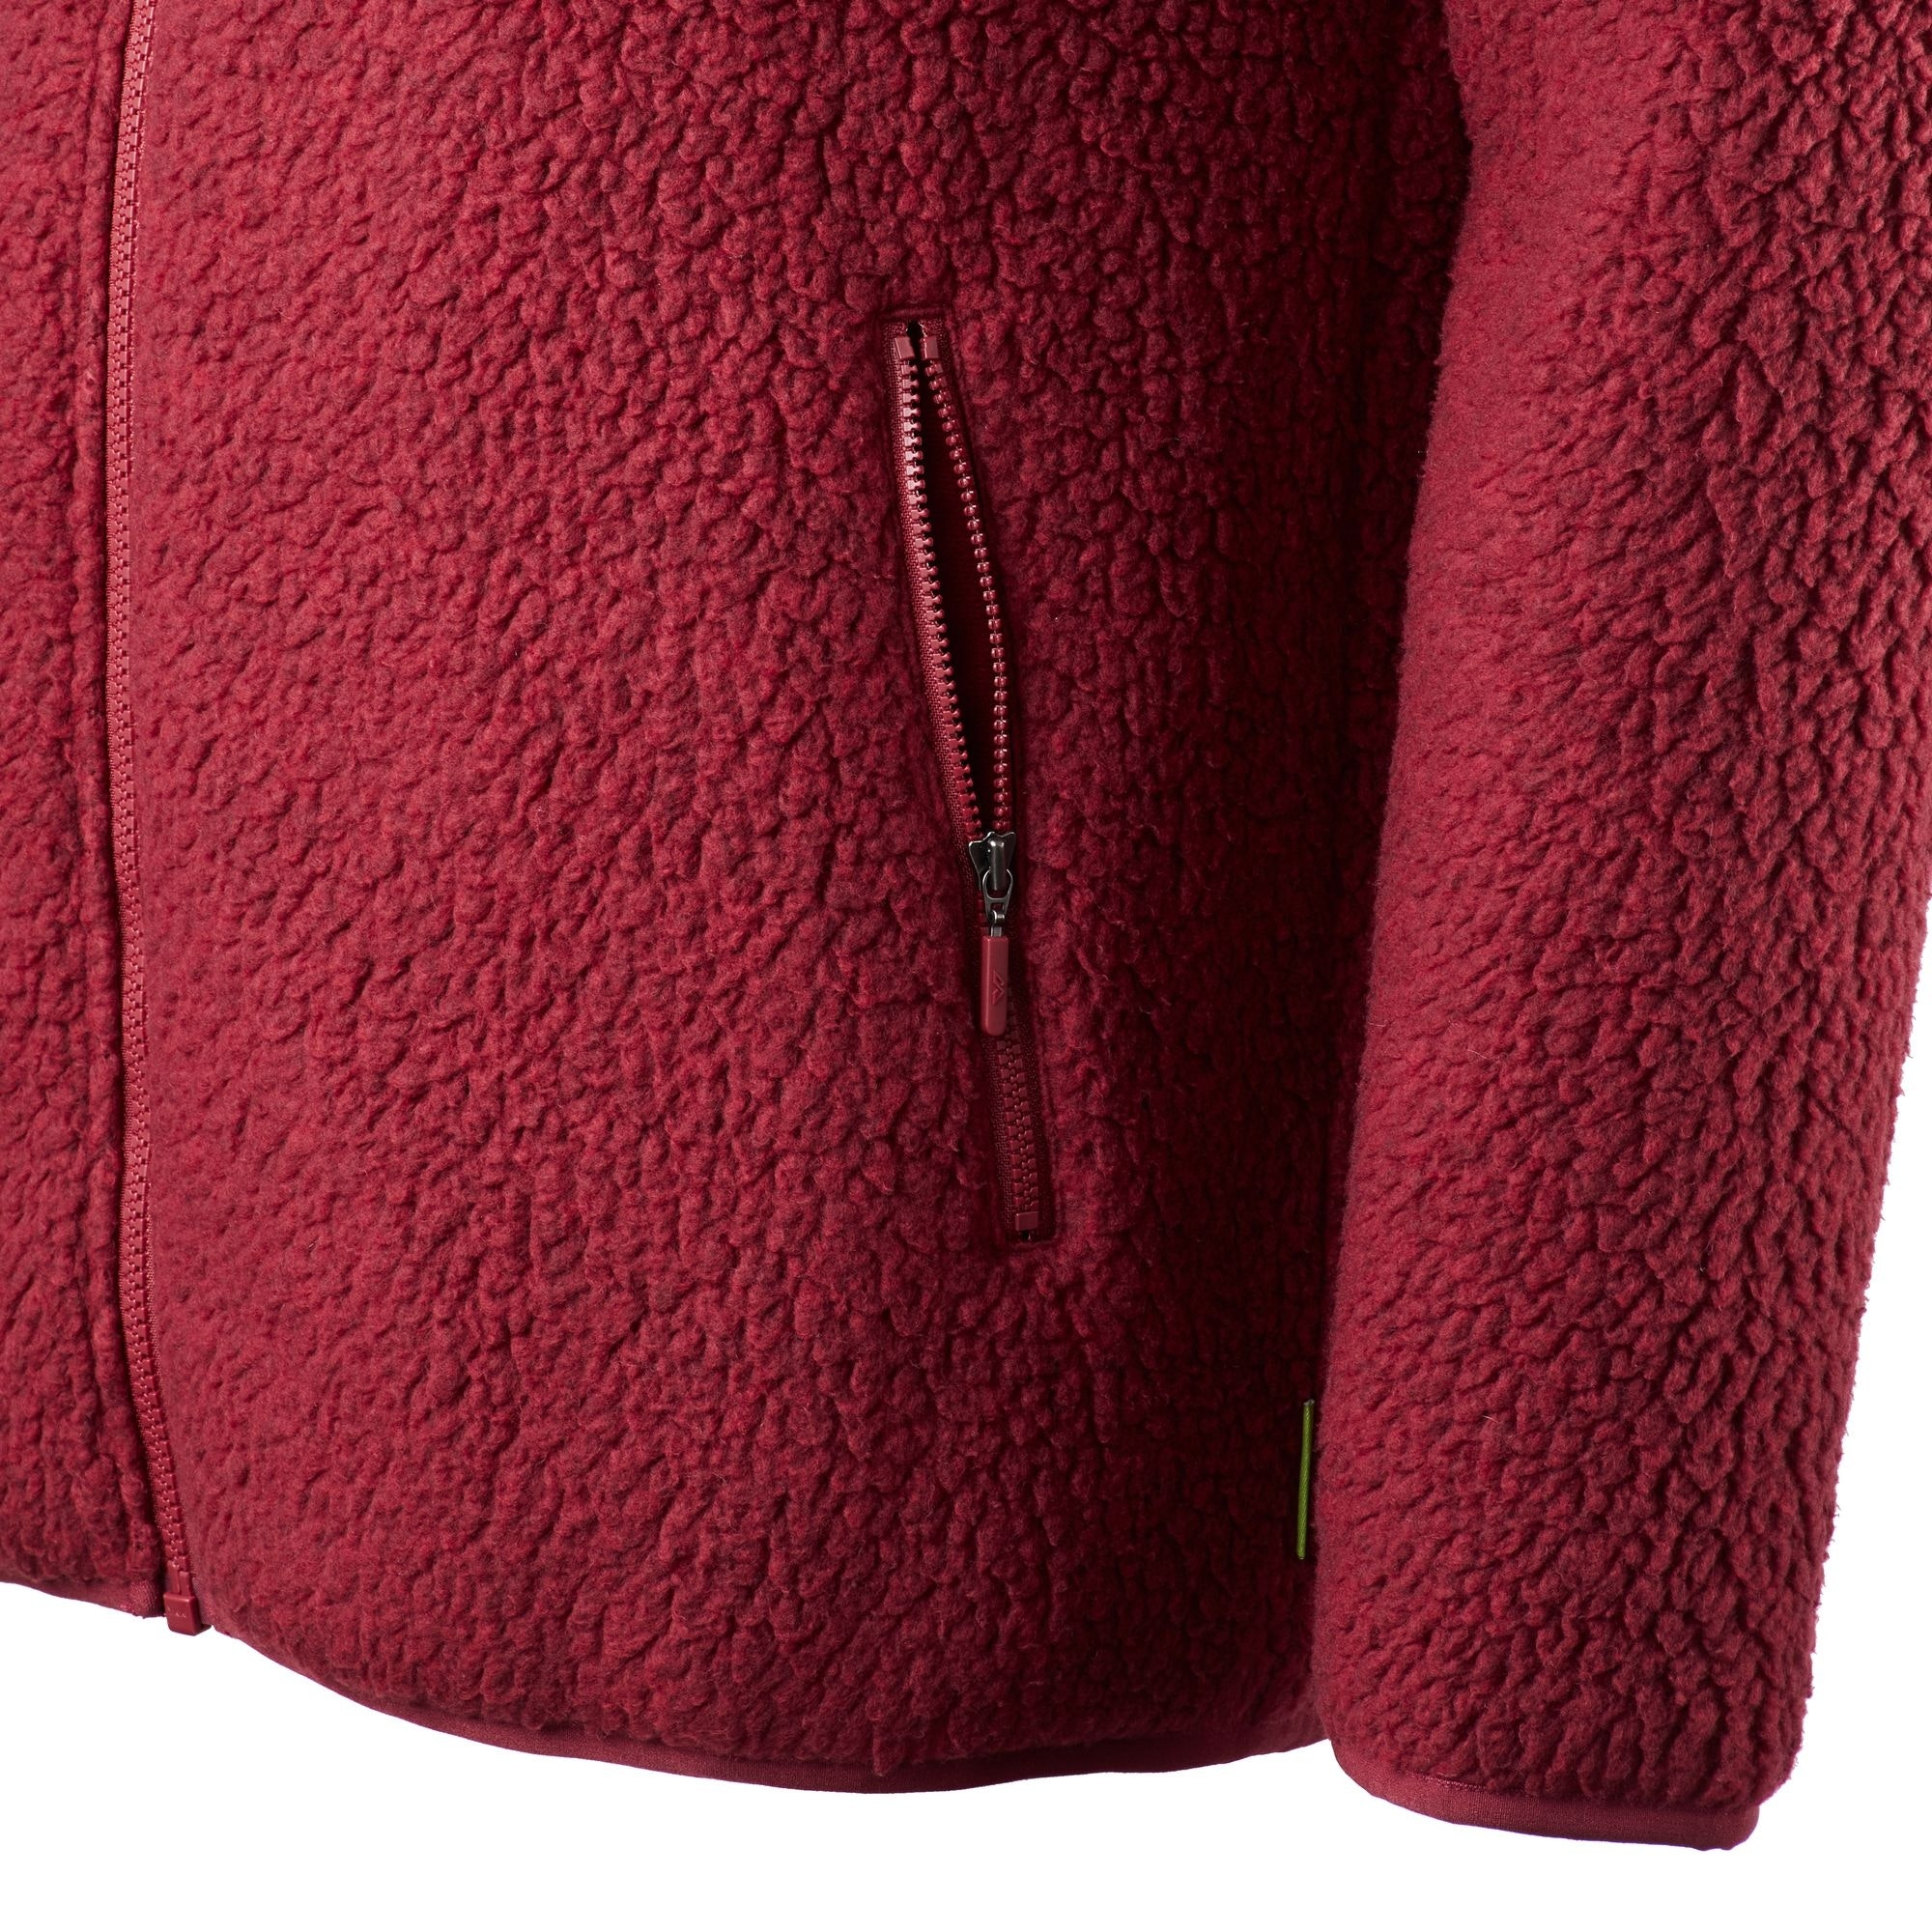 NEW-Kathmandu-Baffin-Island-Men-039-s-Full-Zip-Hooded-Warm-Outdoor-Fleece-Jacket thumbnail 20